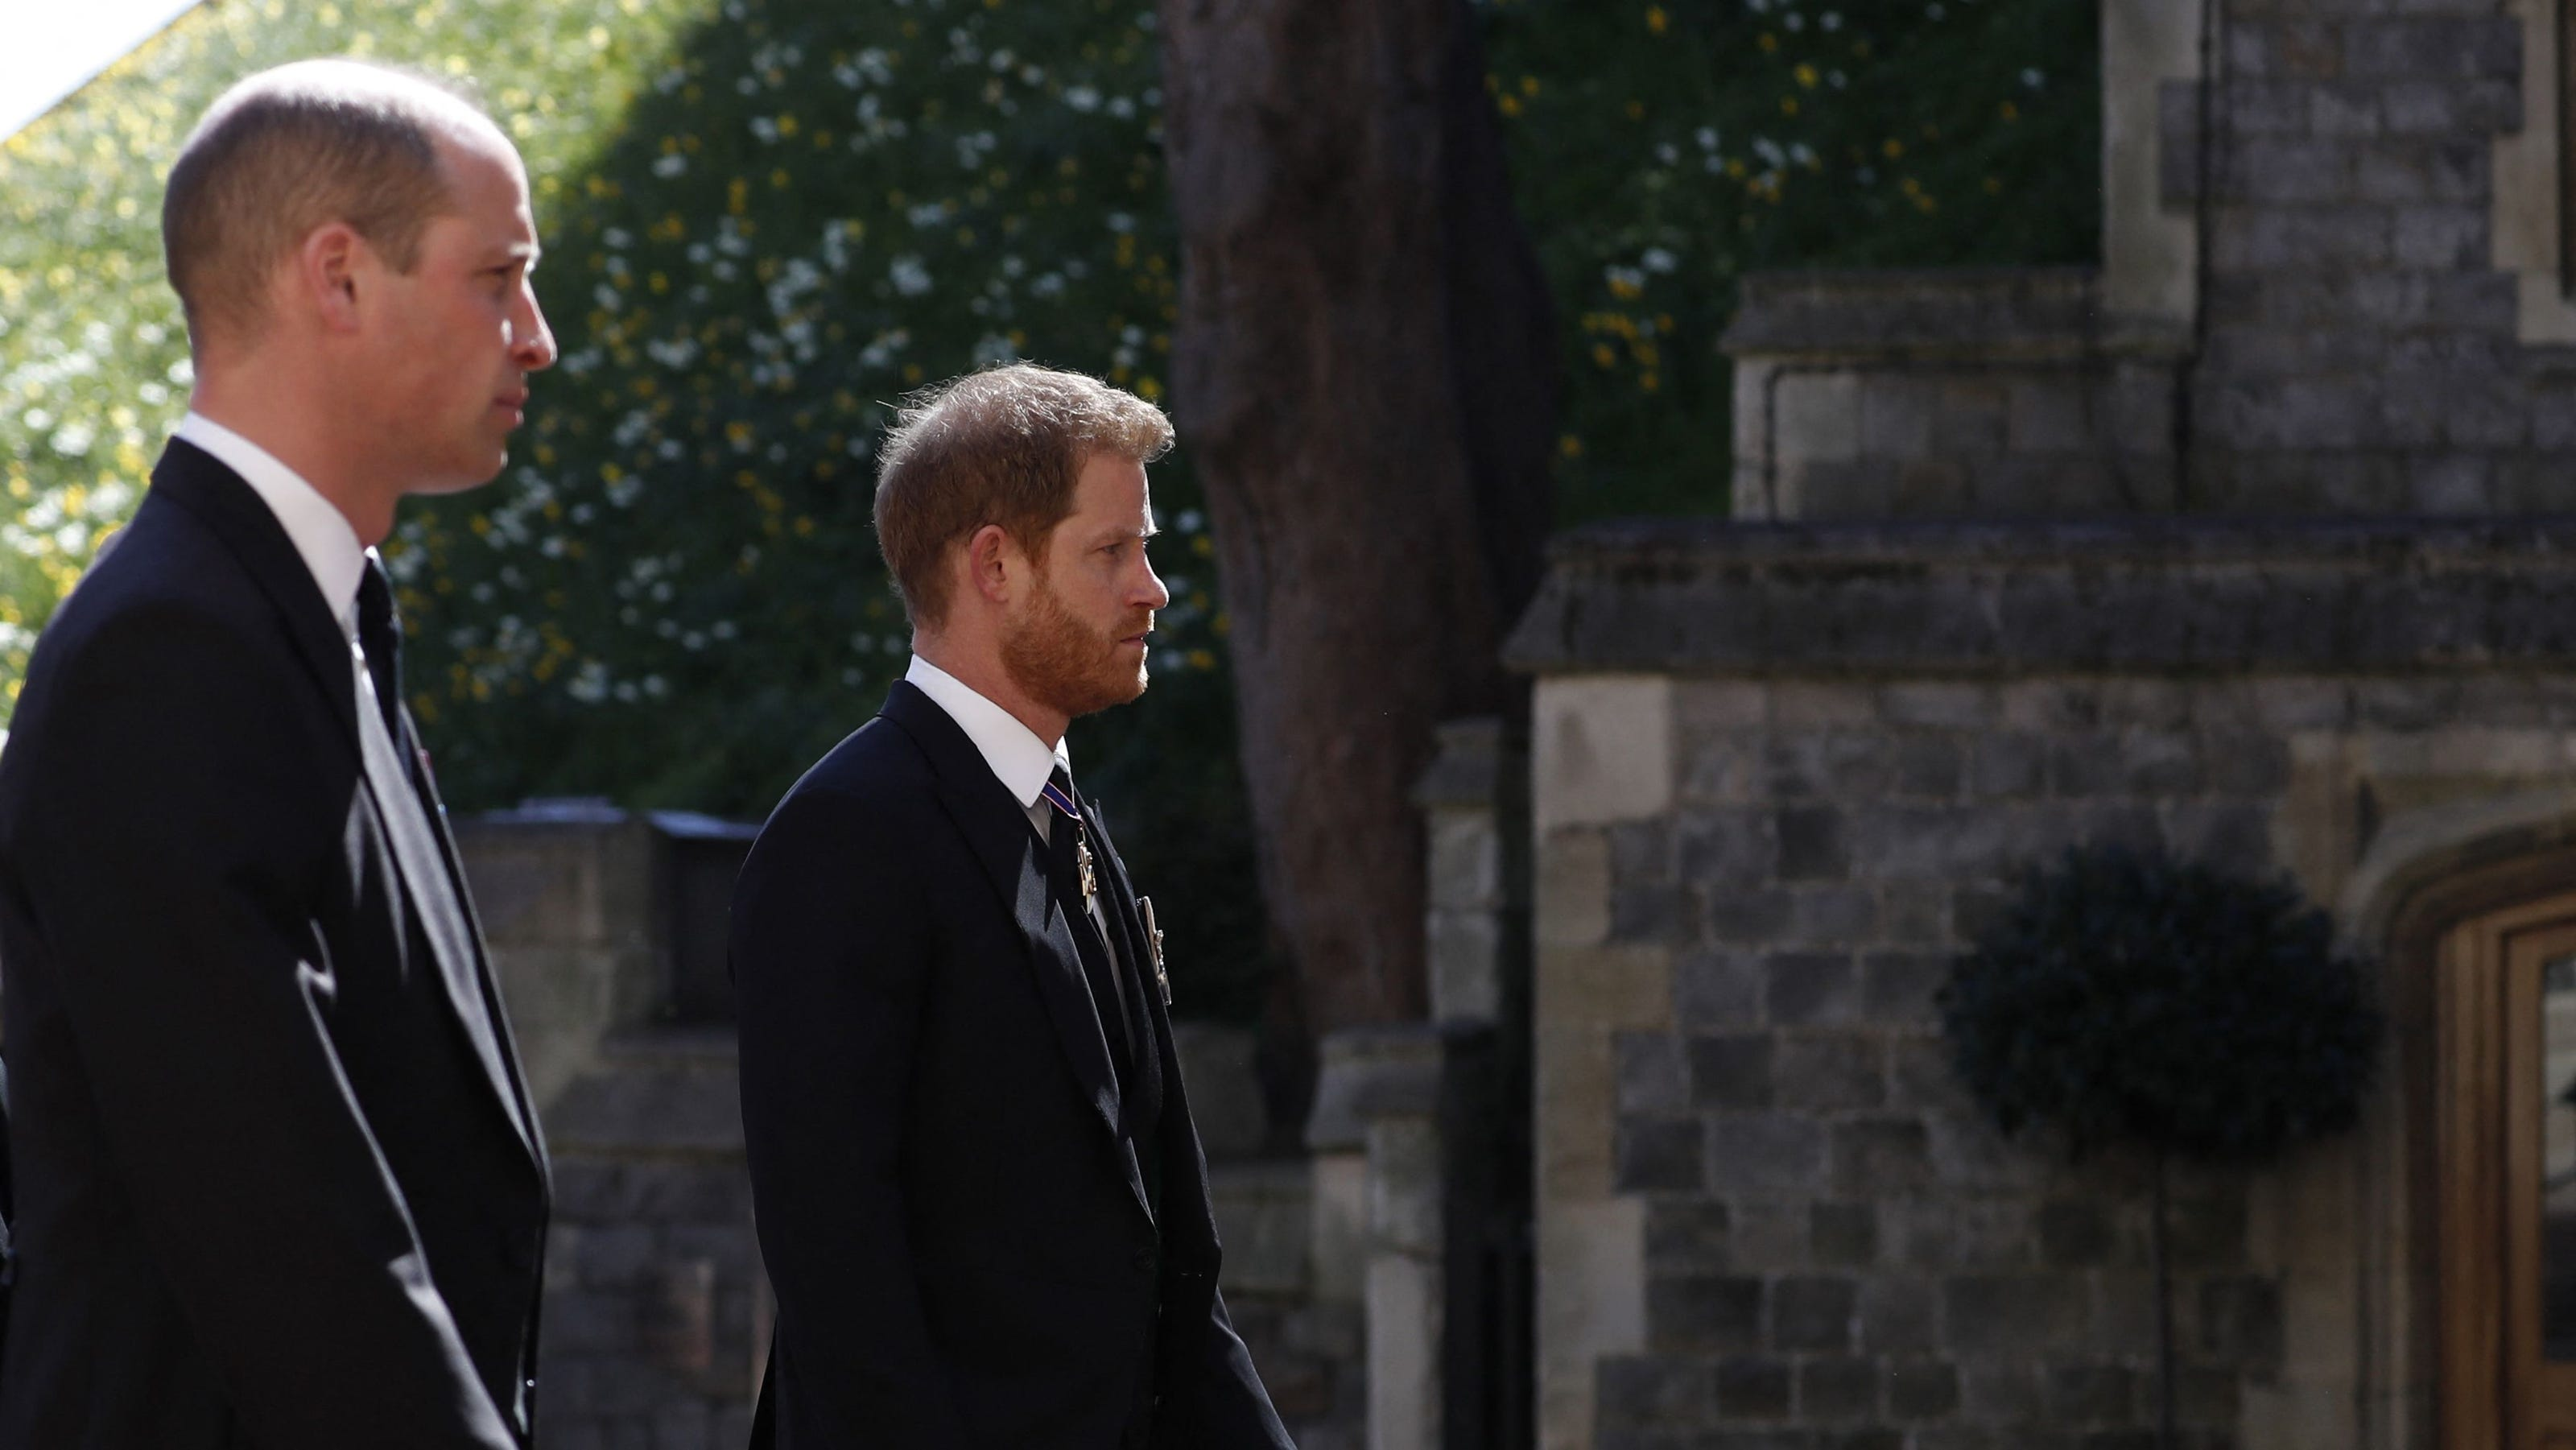 Royal reunion: Will and Harry leave Prince Philip's funeral together, Meghan watches at home